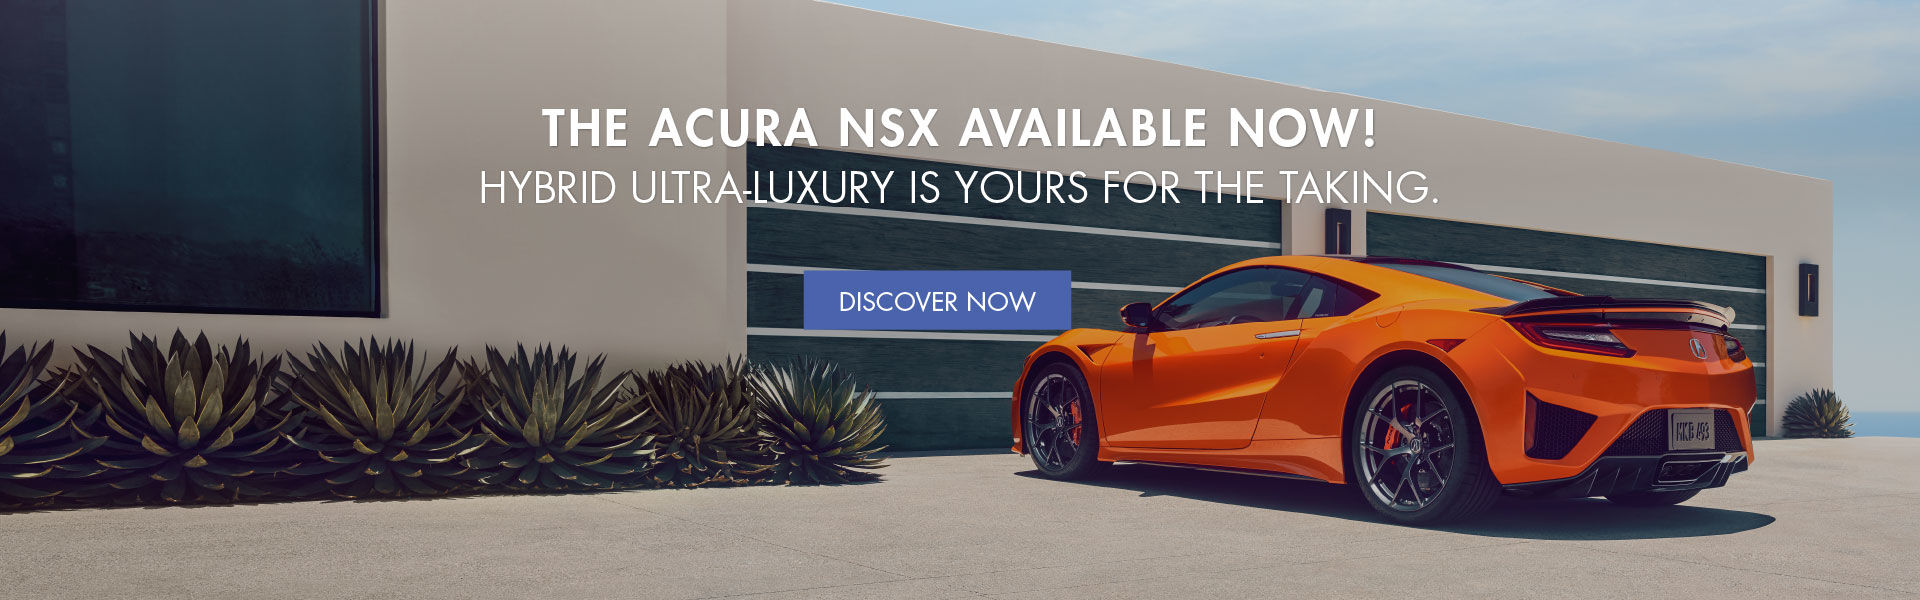 The Acura NSX Available Now!